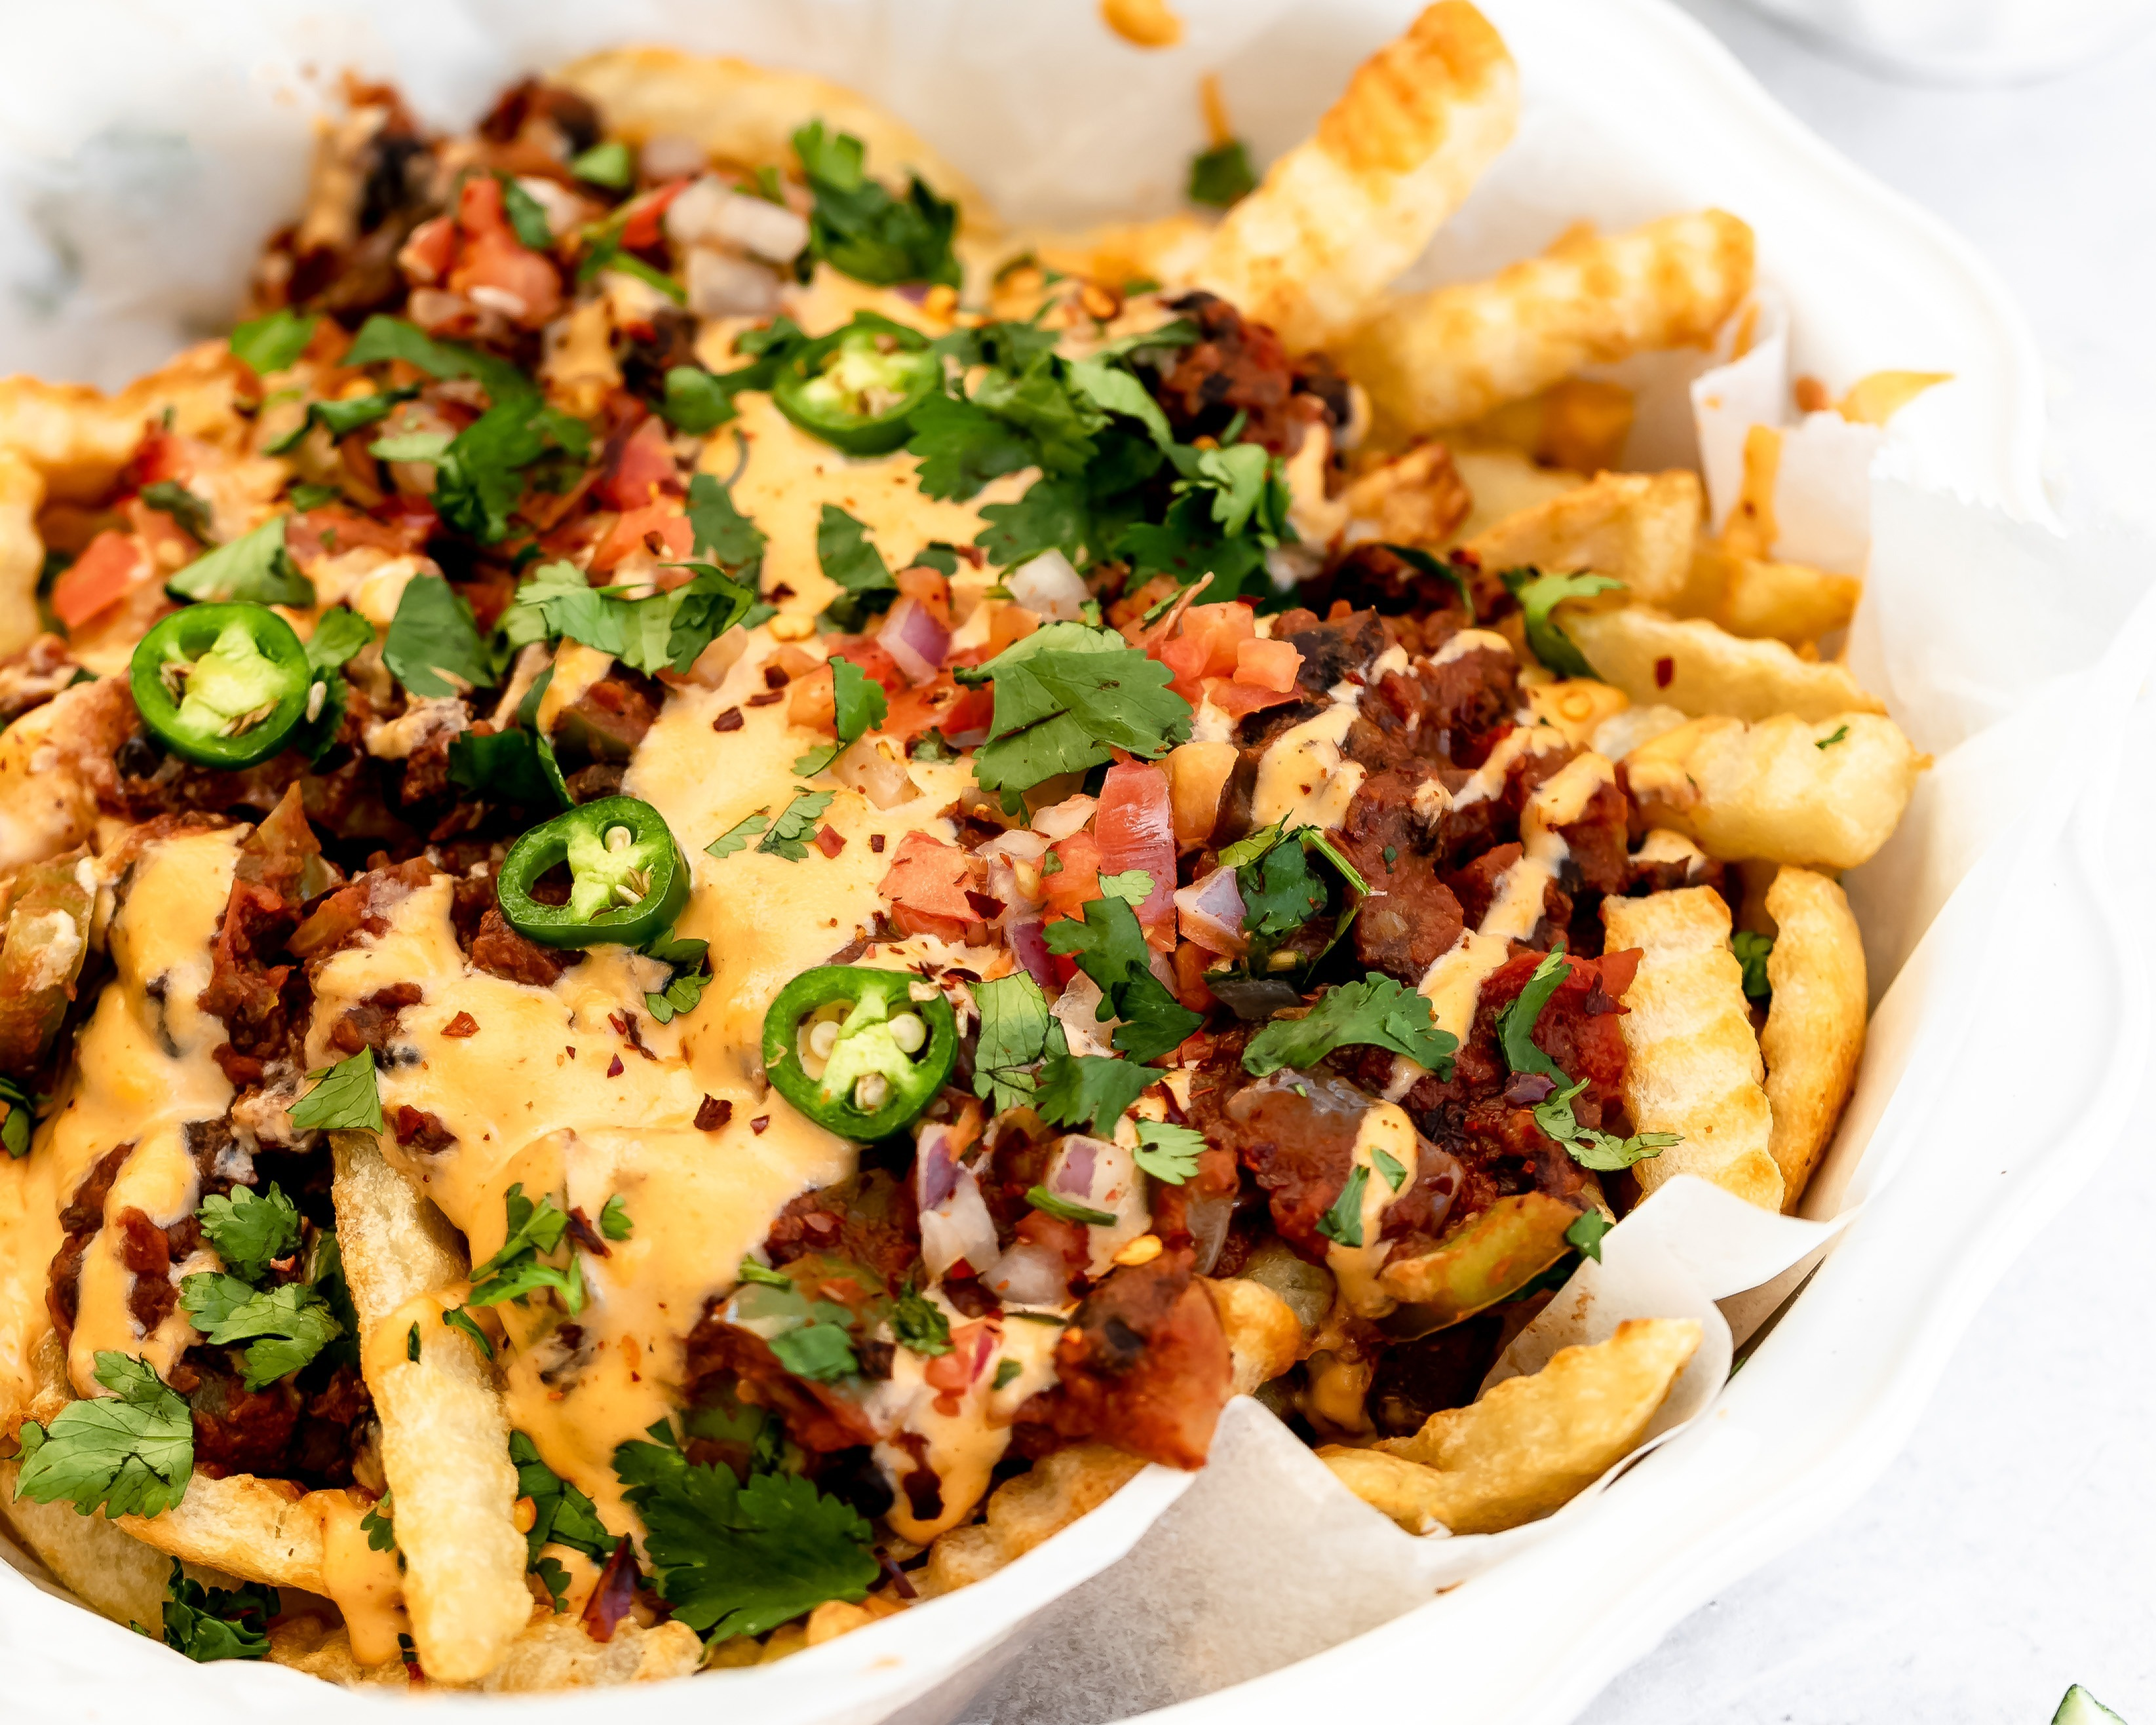 Image of Vegetarian Chili Cheese Fries